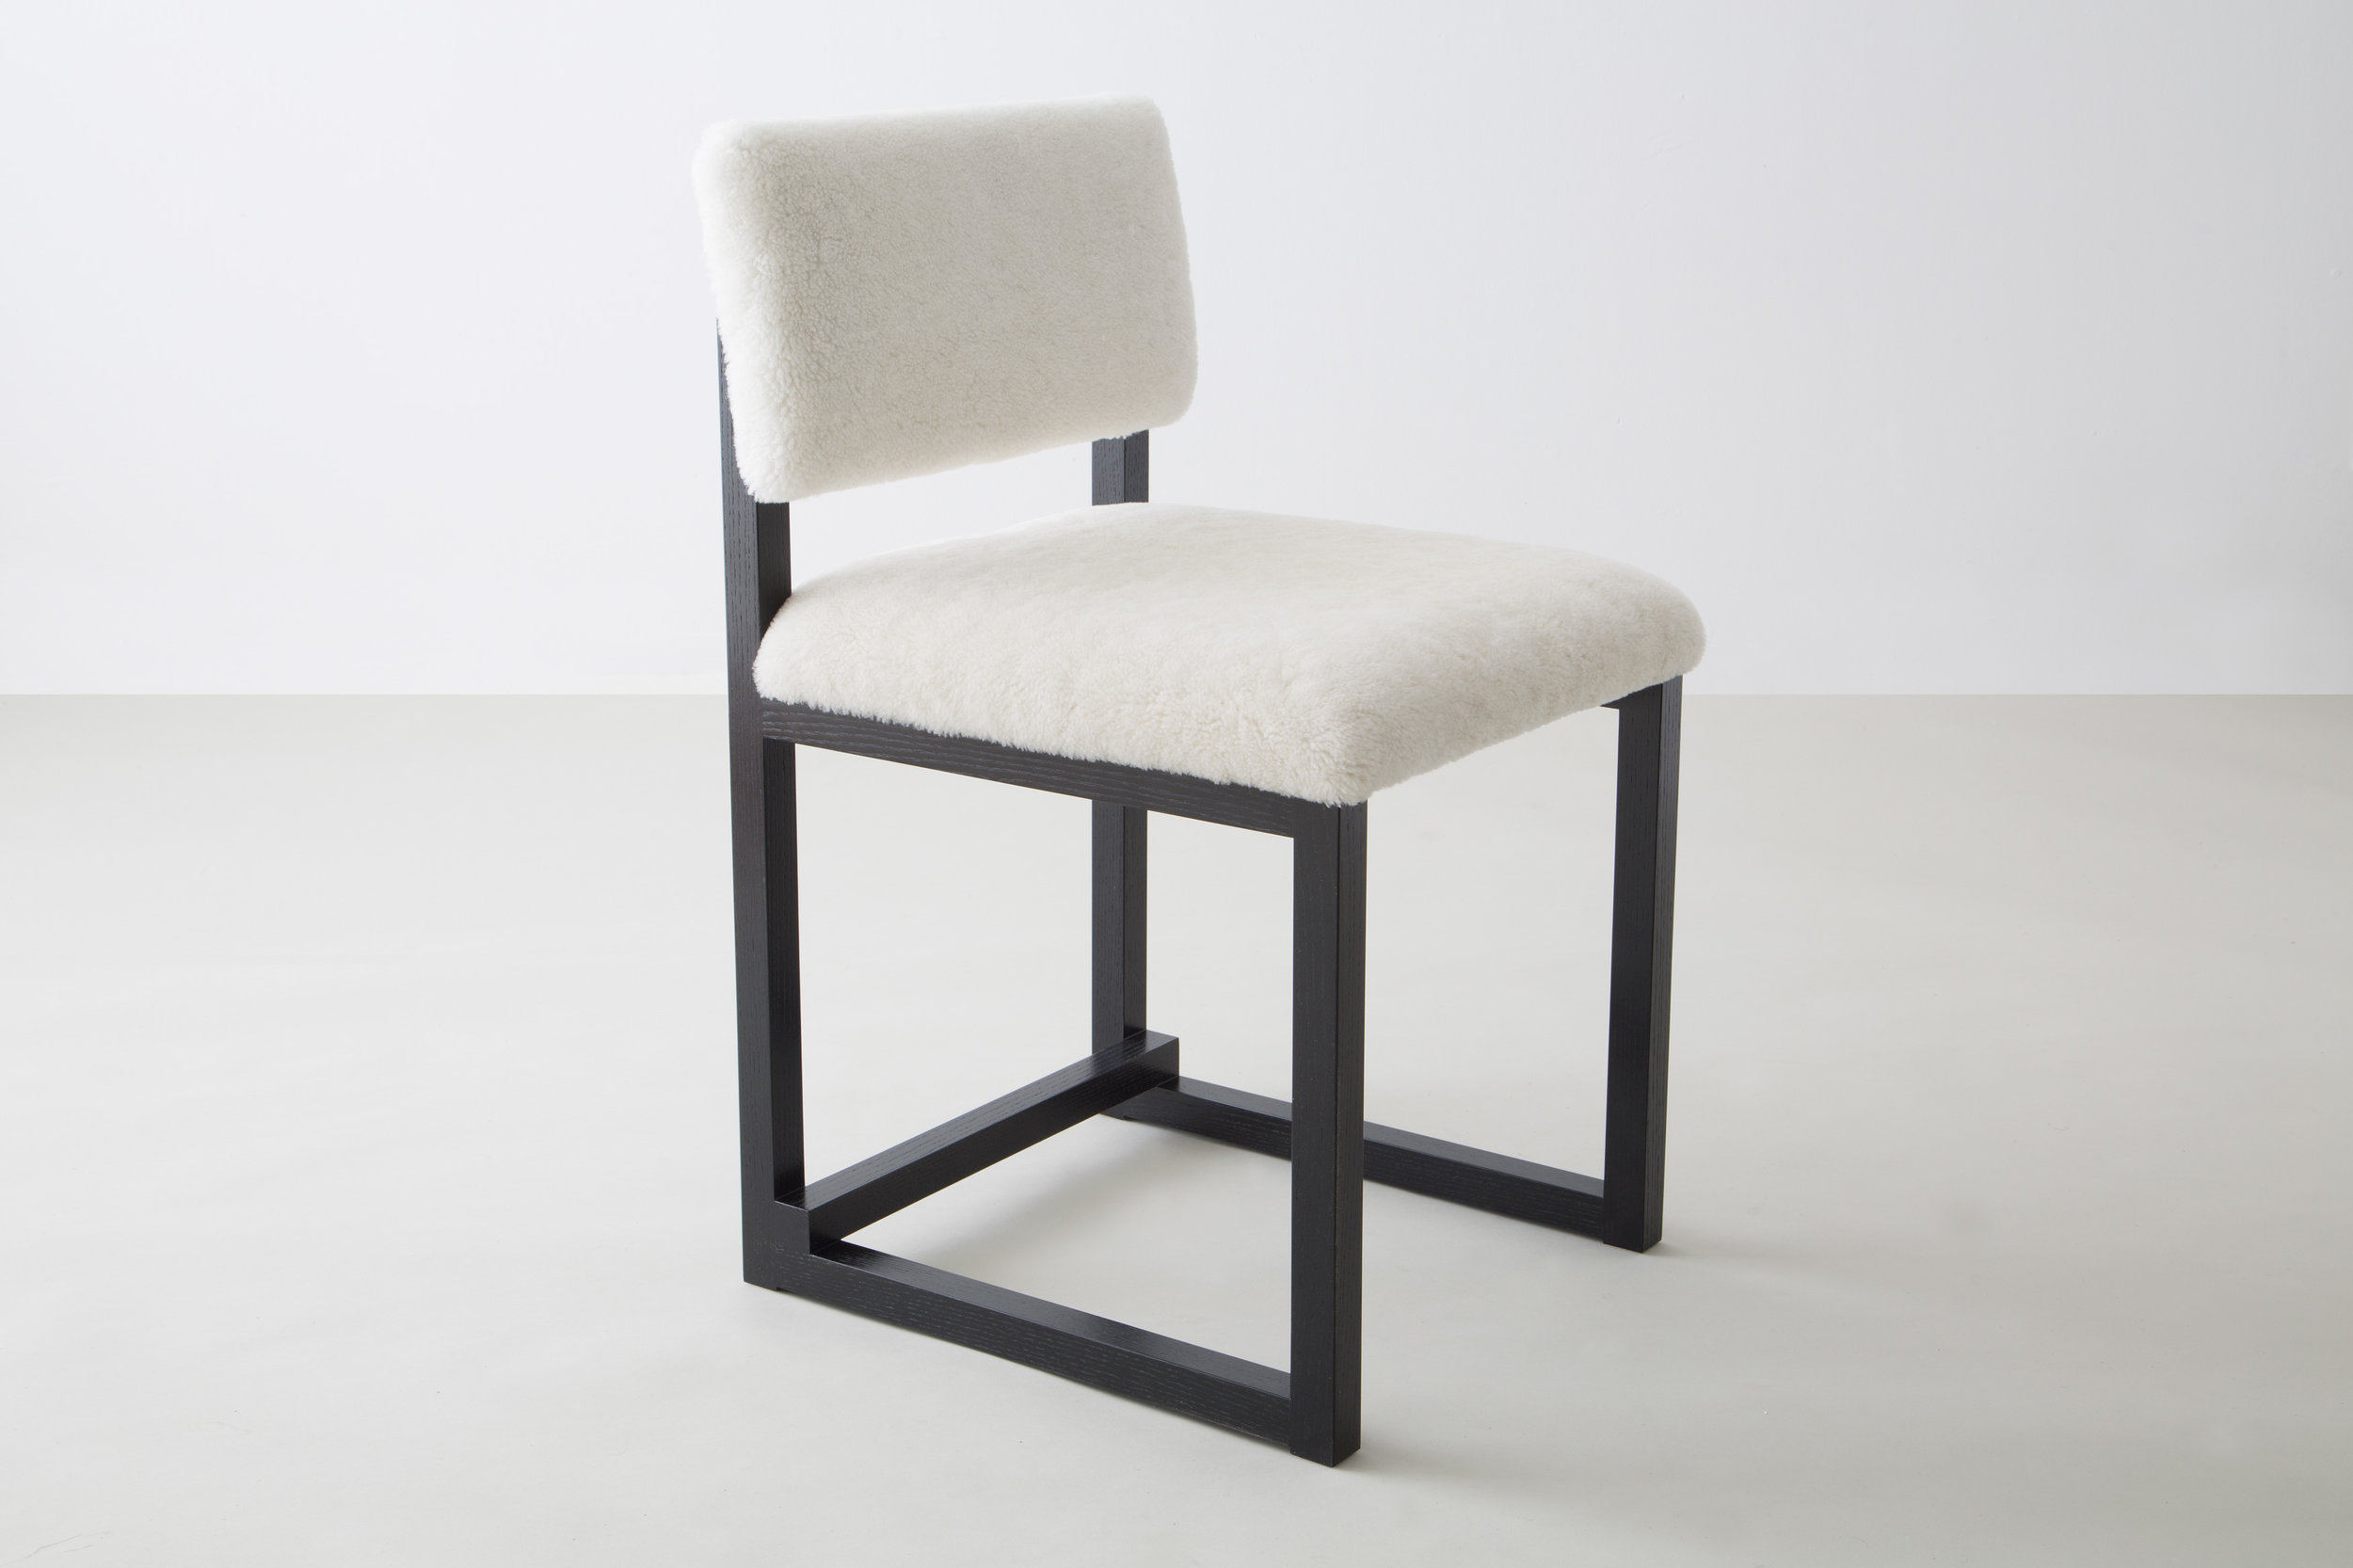 SQ_Upholstered_Dining_Chair1_Edit_WEB.jpg